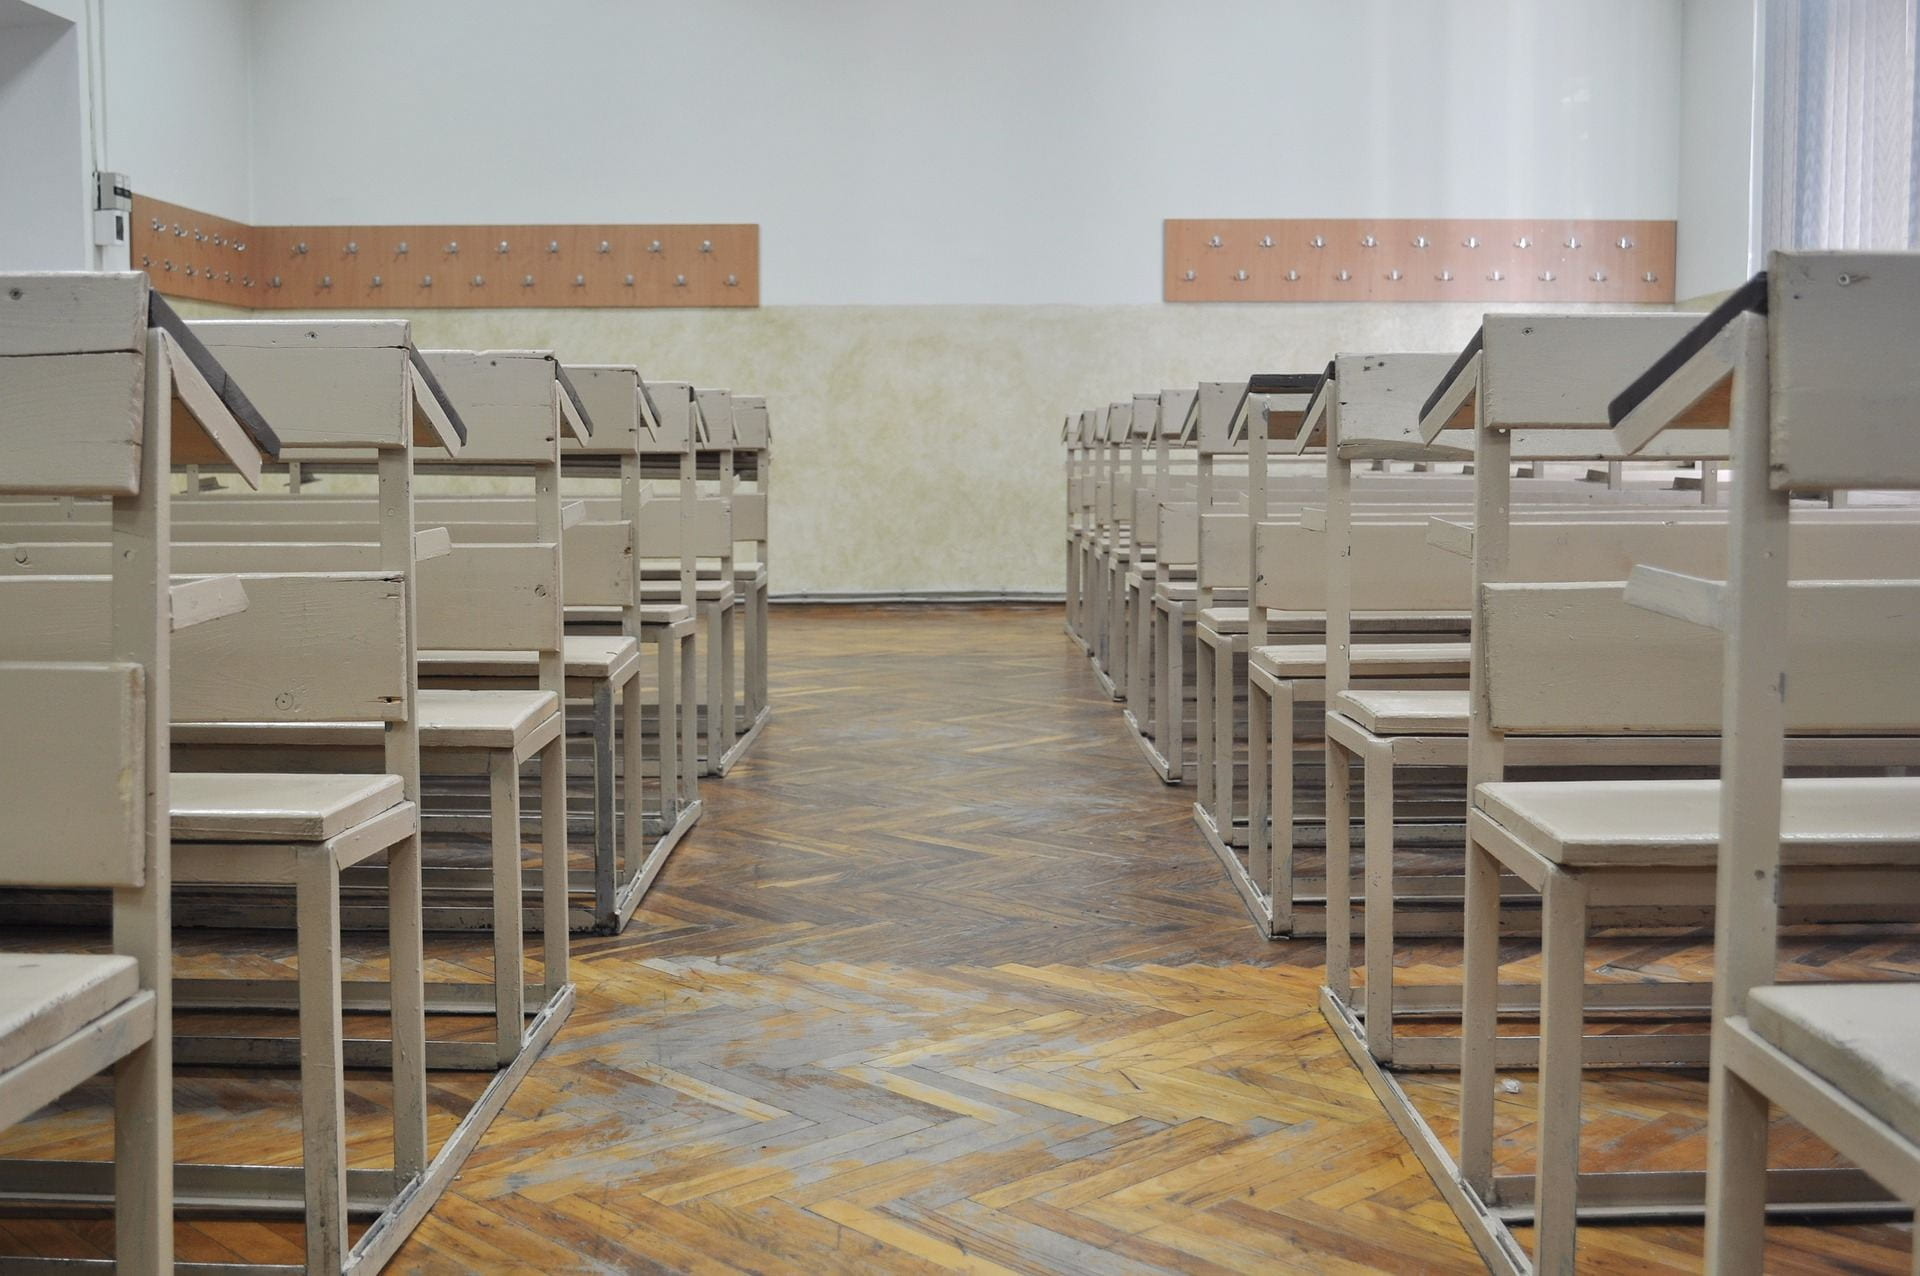 Pictured is an empty classroom with all the chairs facing a blank white board